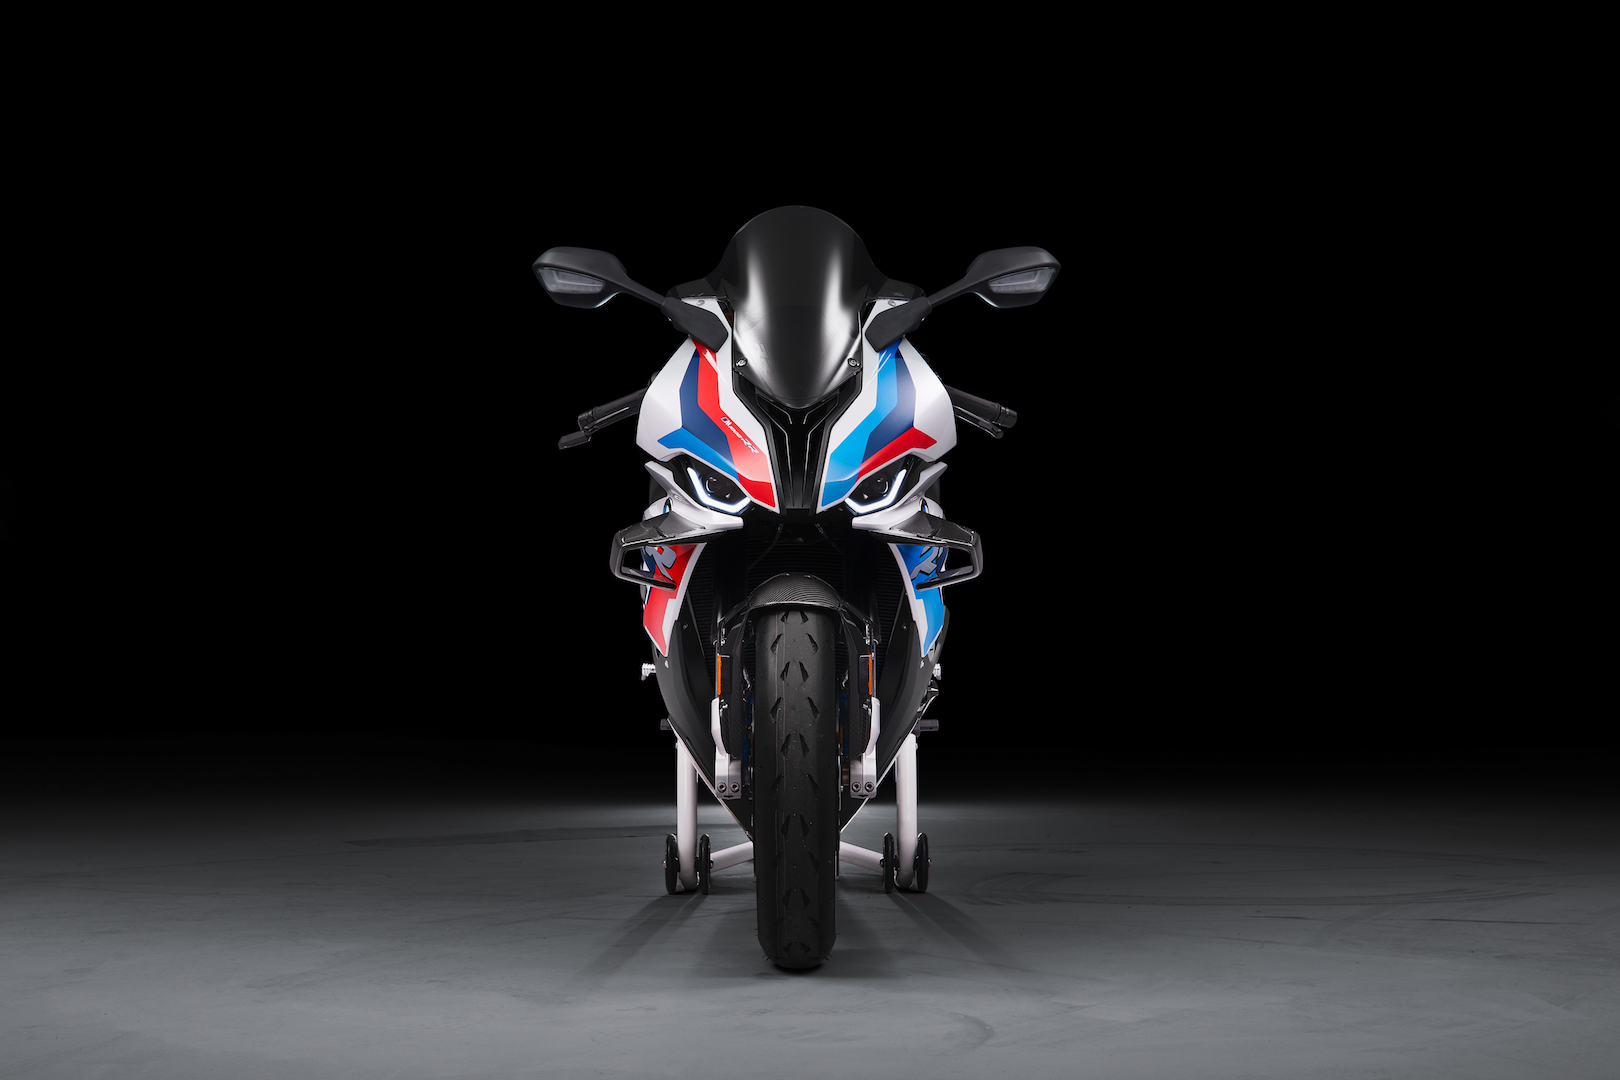 Bmw M1000rr Revealed The First M Motorcycle Drivemag Riders